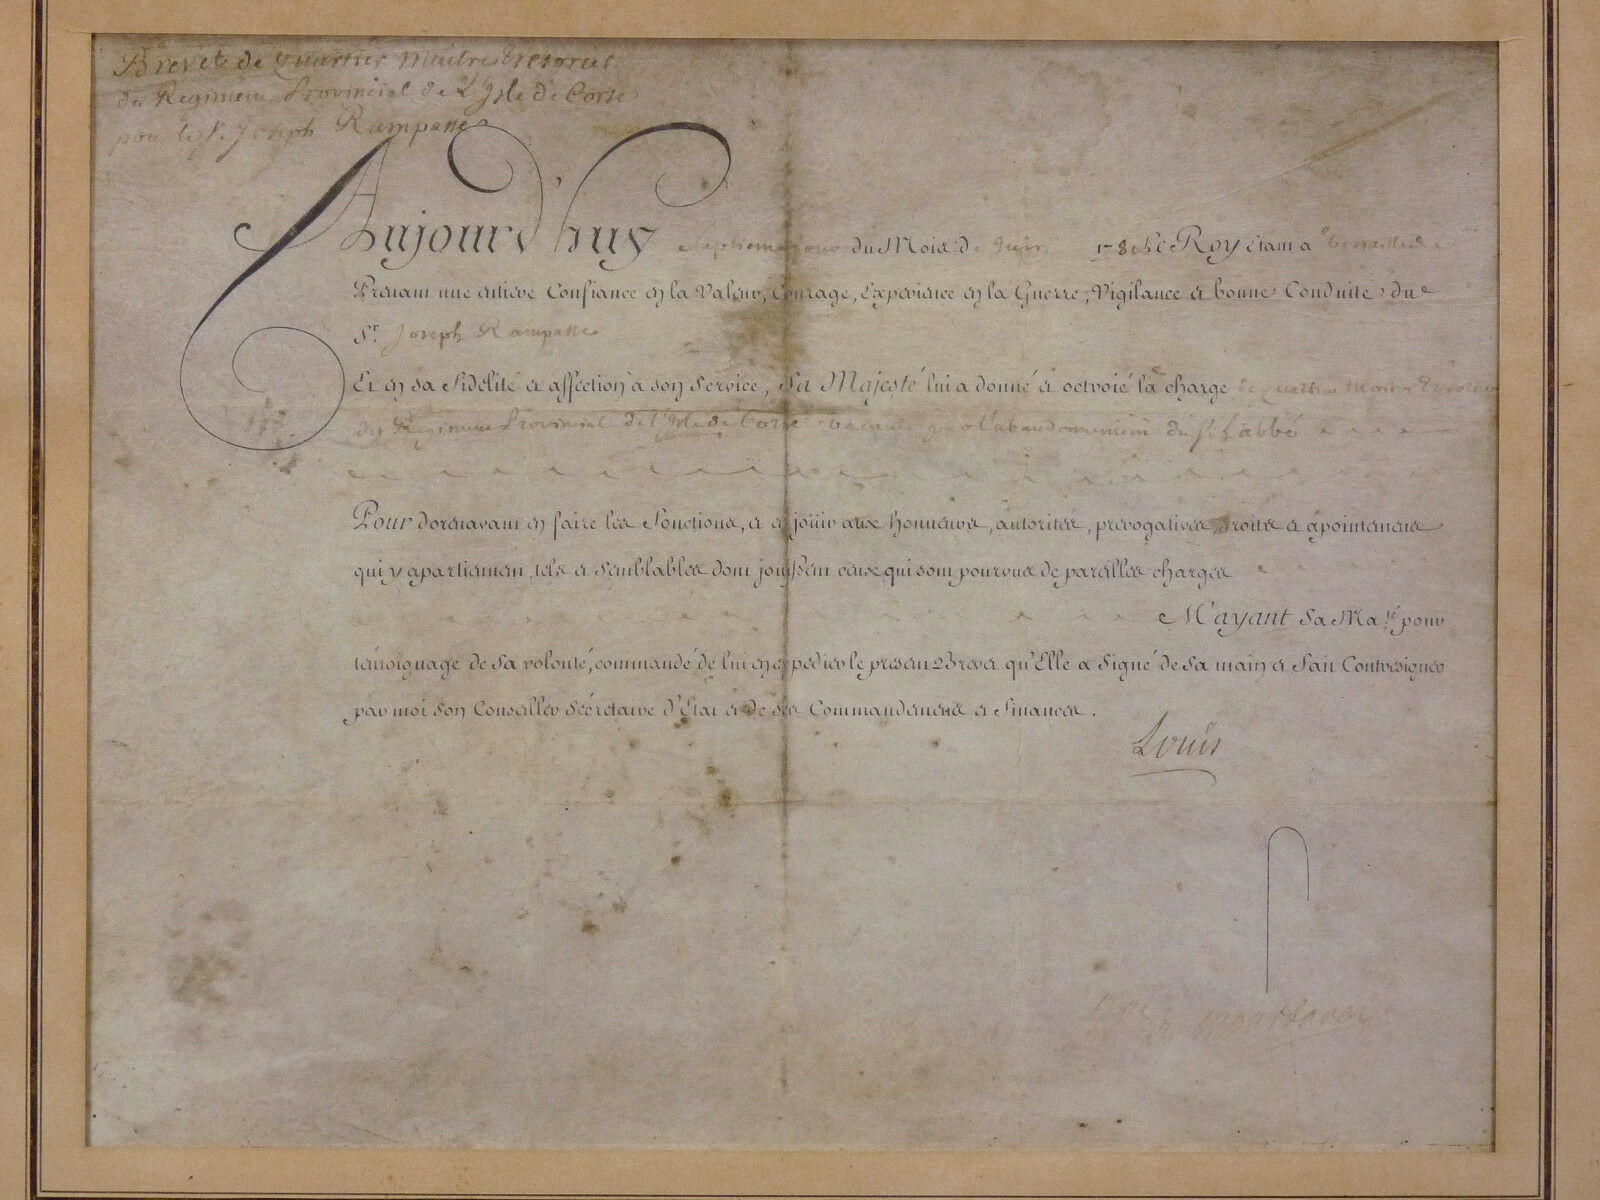 1780 :License of Petty officer regiment the island of CORSICA;the King to Joseph